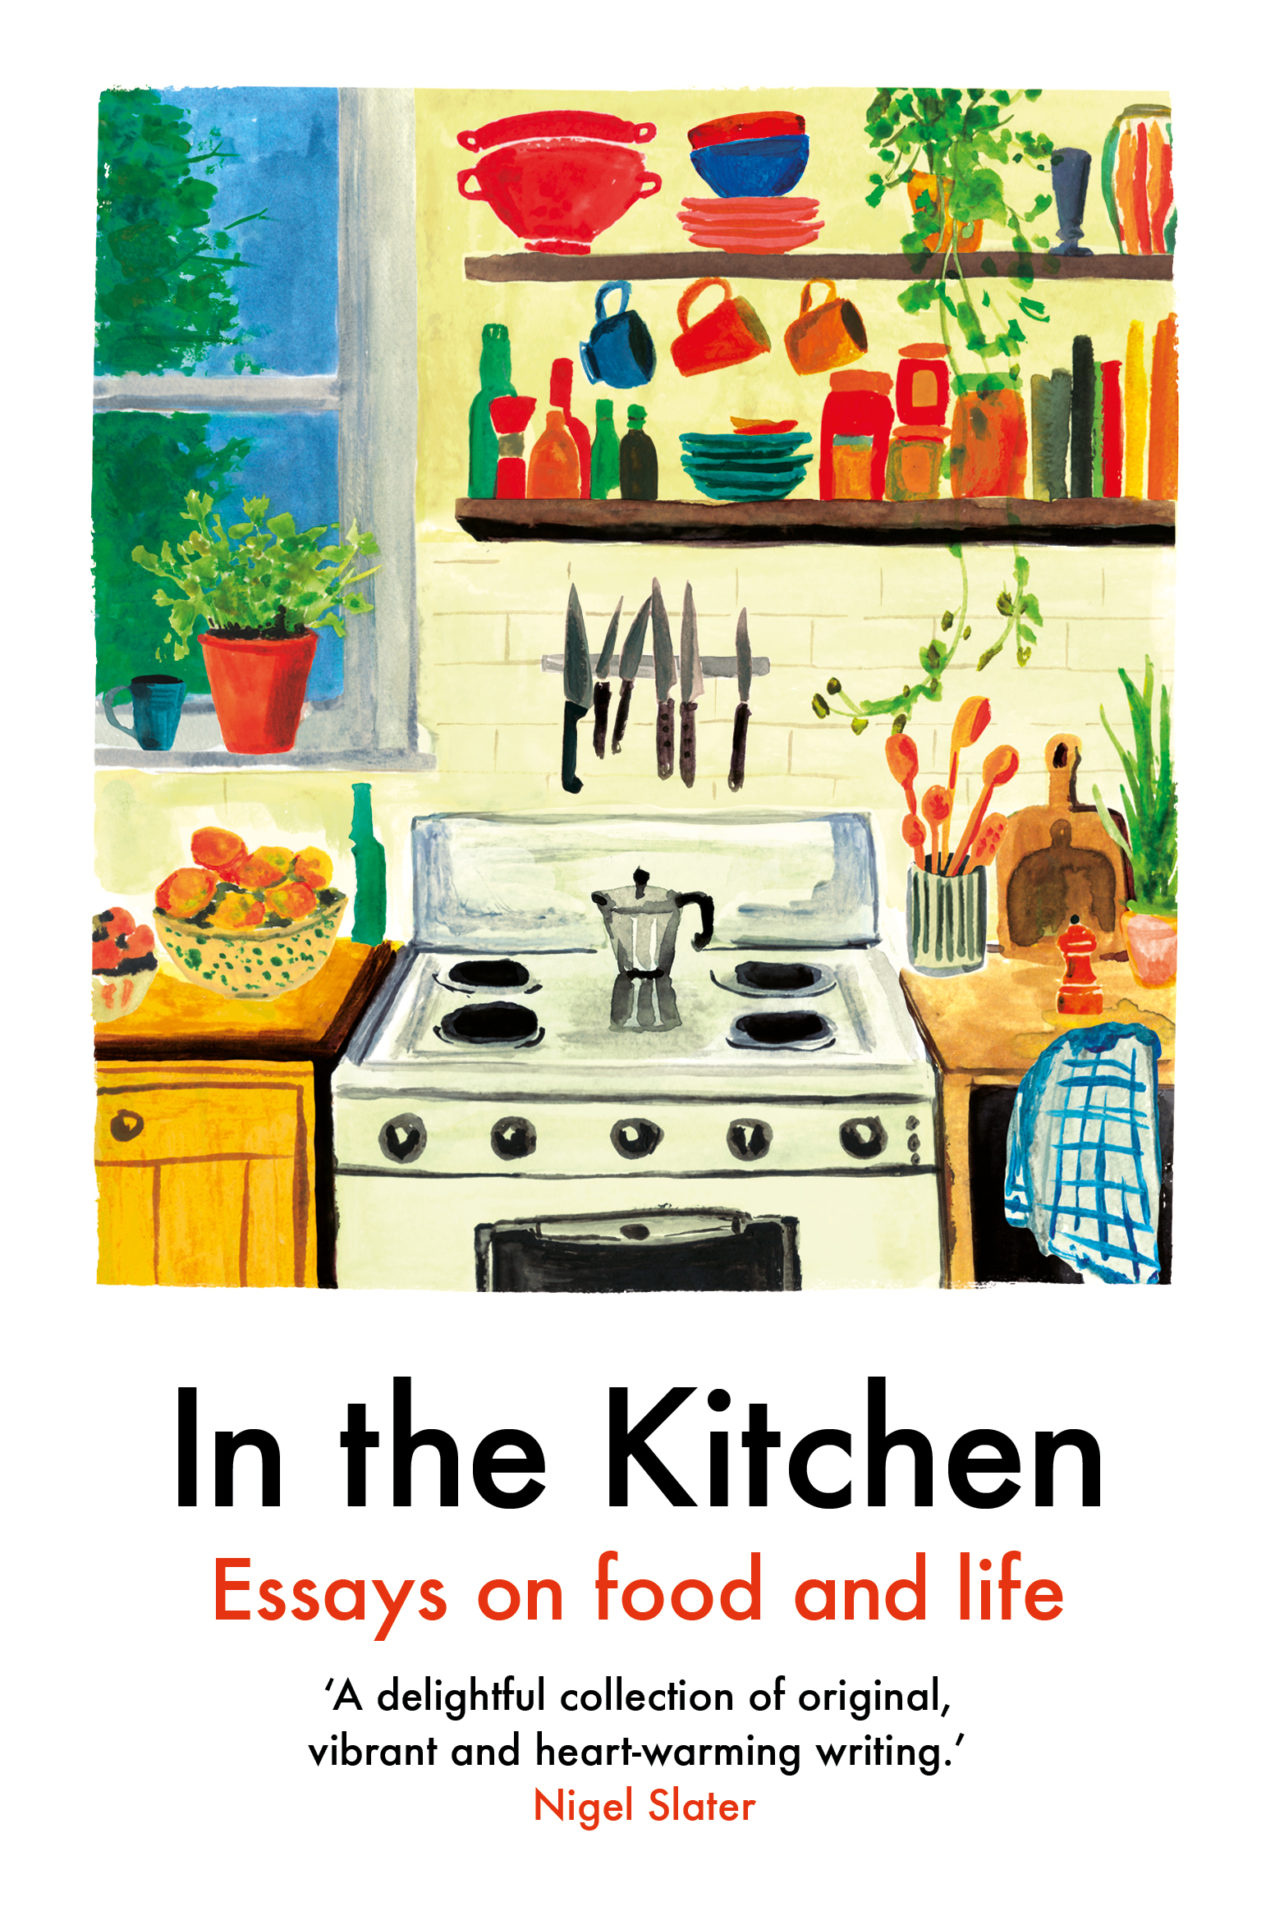 In the Kitchen: Essays on food and life by